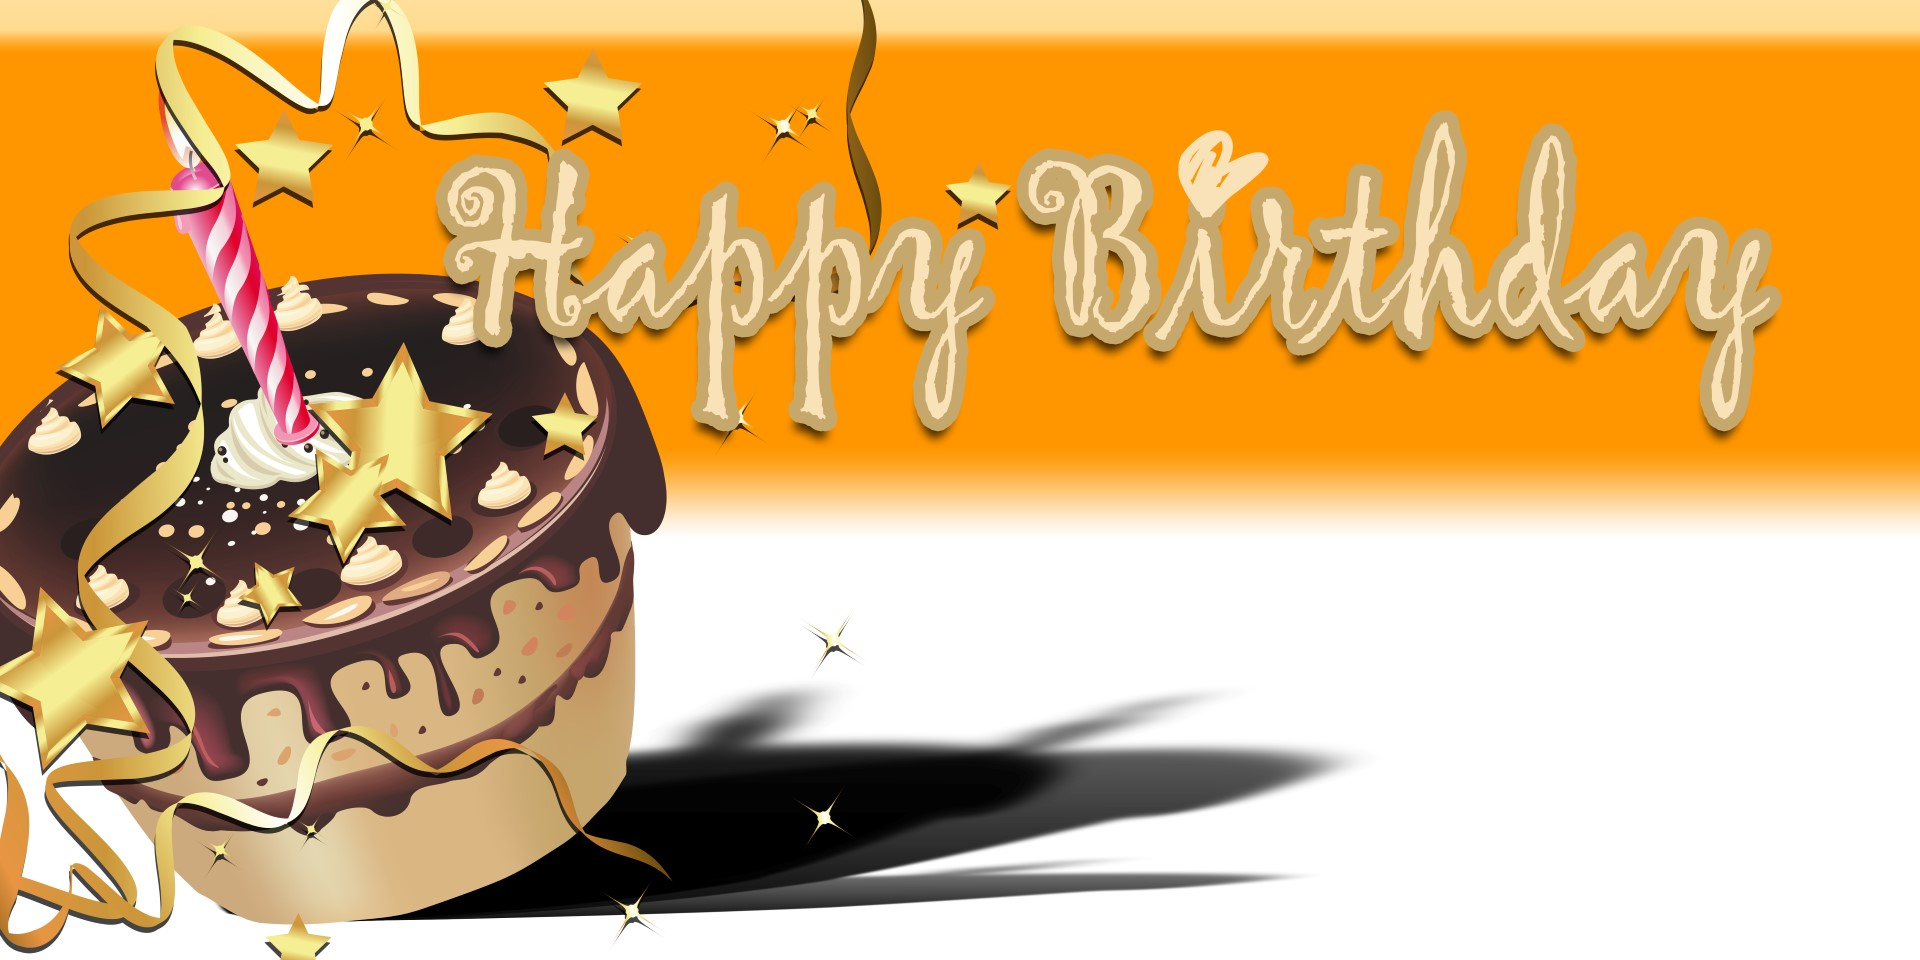 Happy Birthday Banner Orange Cake Vinyl Banners